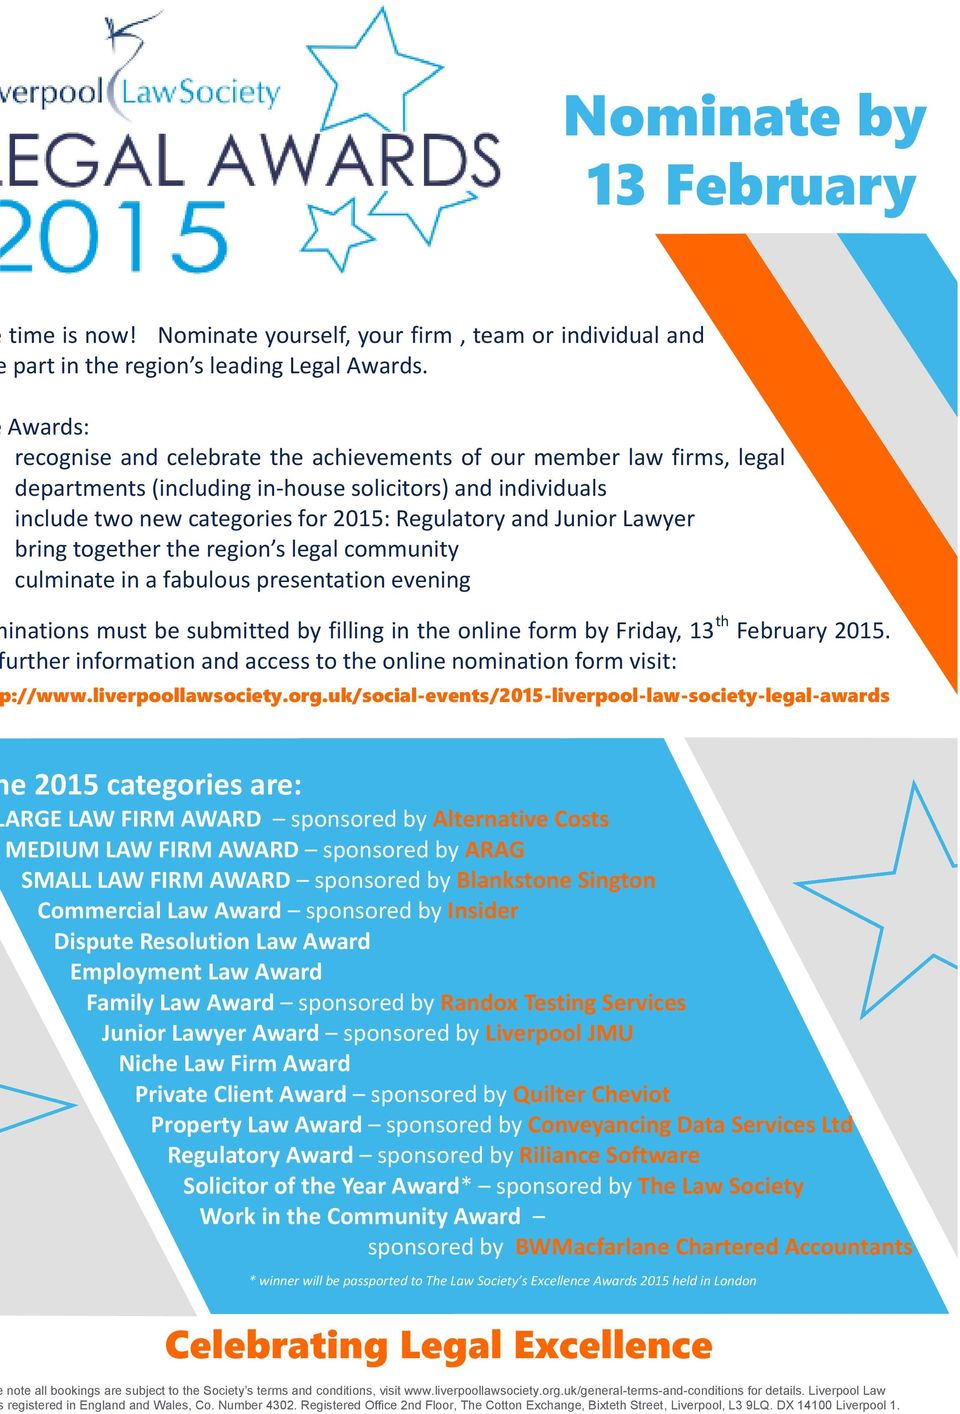 include two new categories for 2015: Regulatory and Junior Lawyer culminate in a fabulous presentation evening inations must be submitted by filling in the online form by Friday, 13 th February 2015.